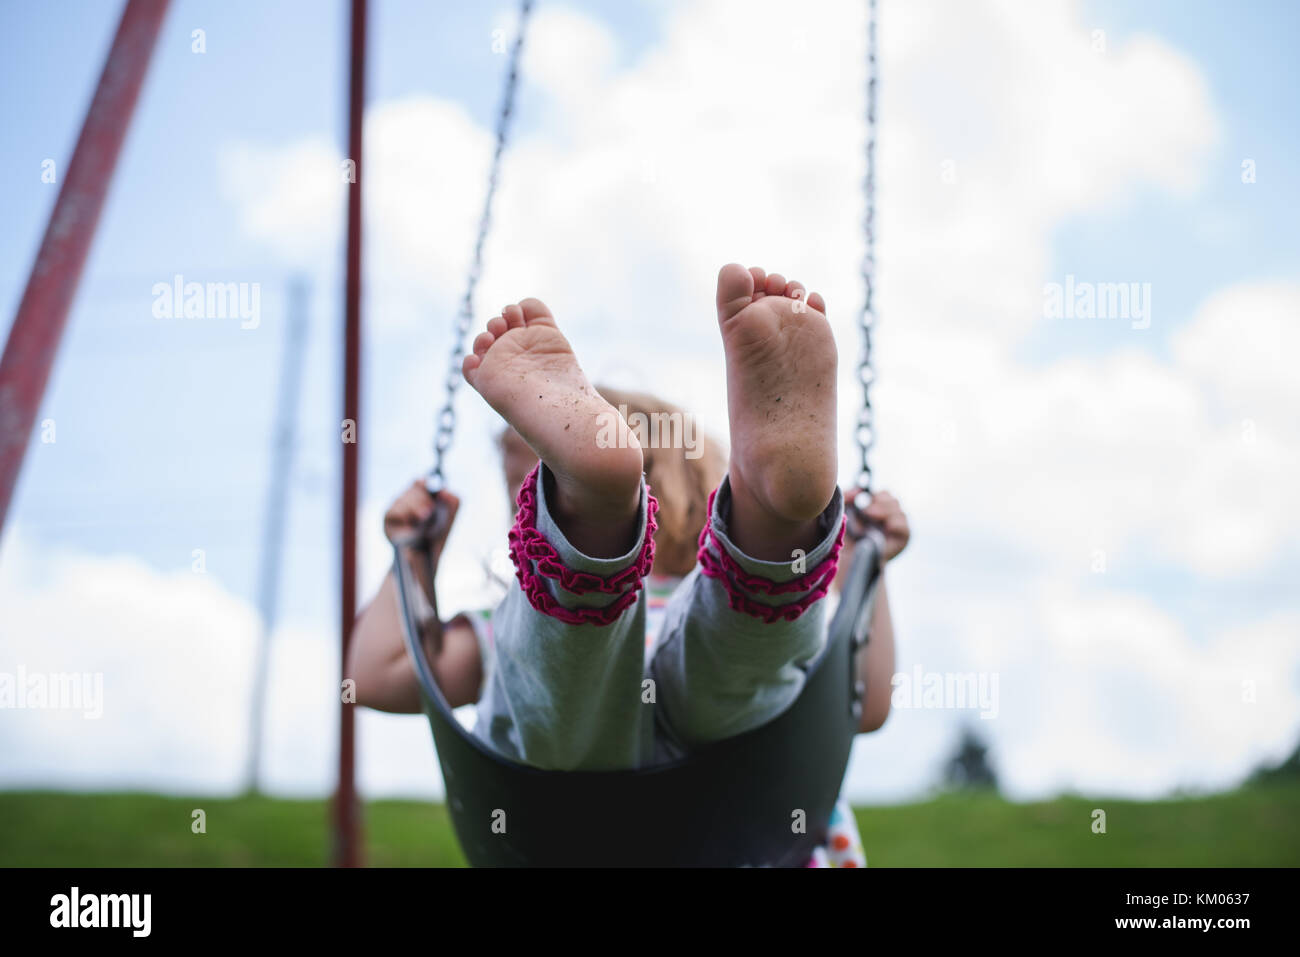 A young girl swings on a swing at a playground in bare feet. - Stock Image